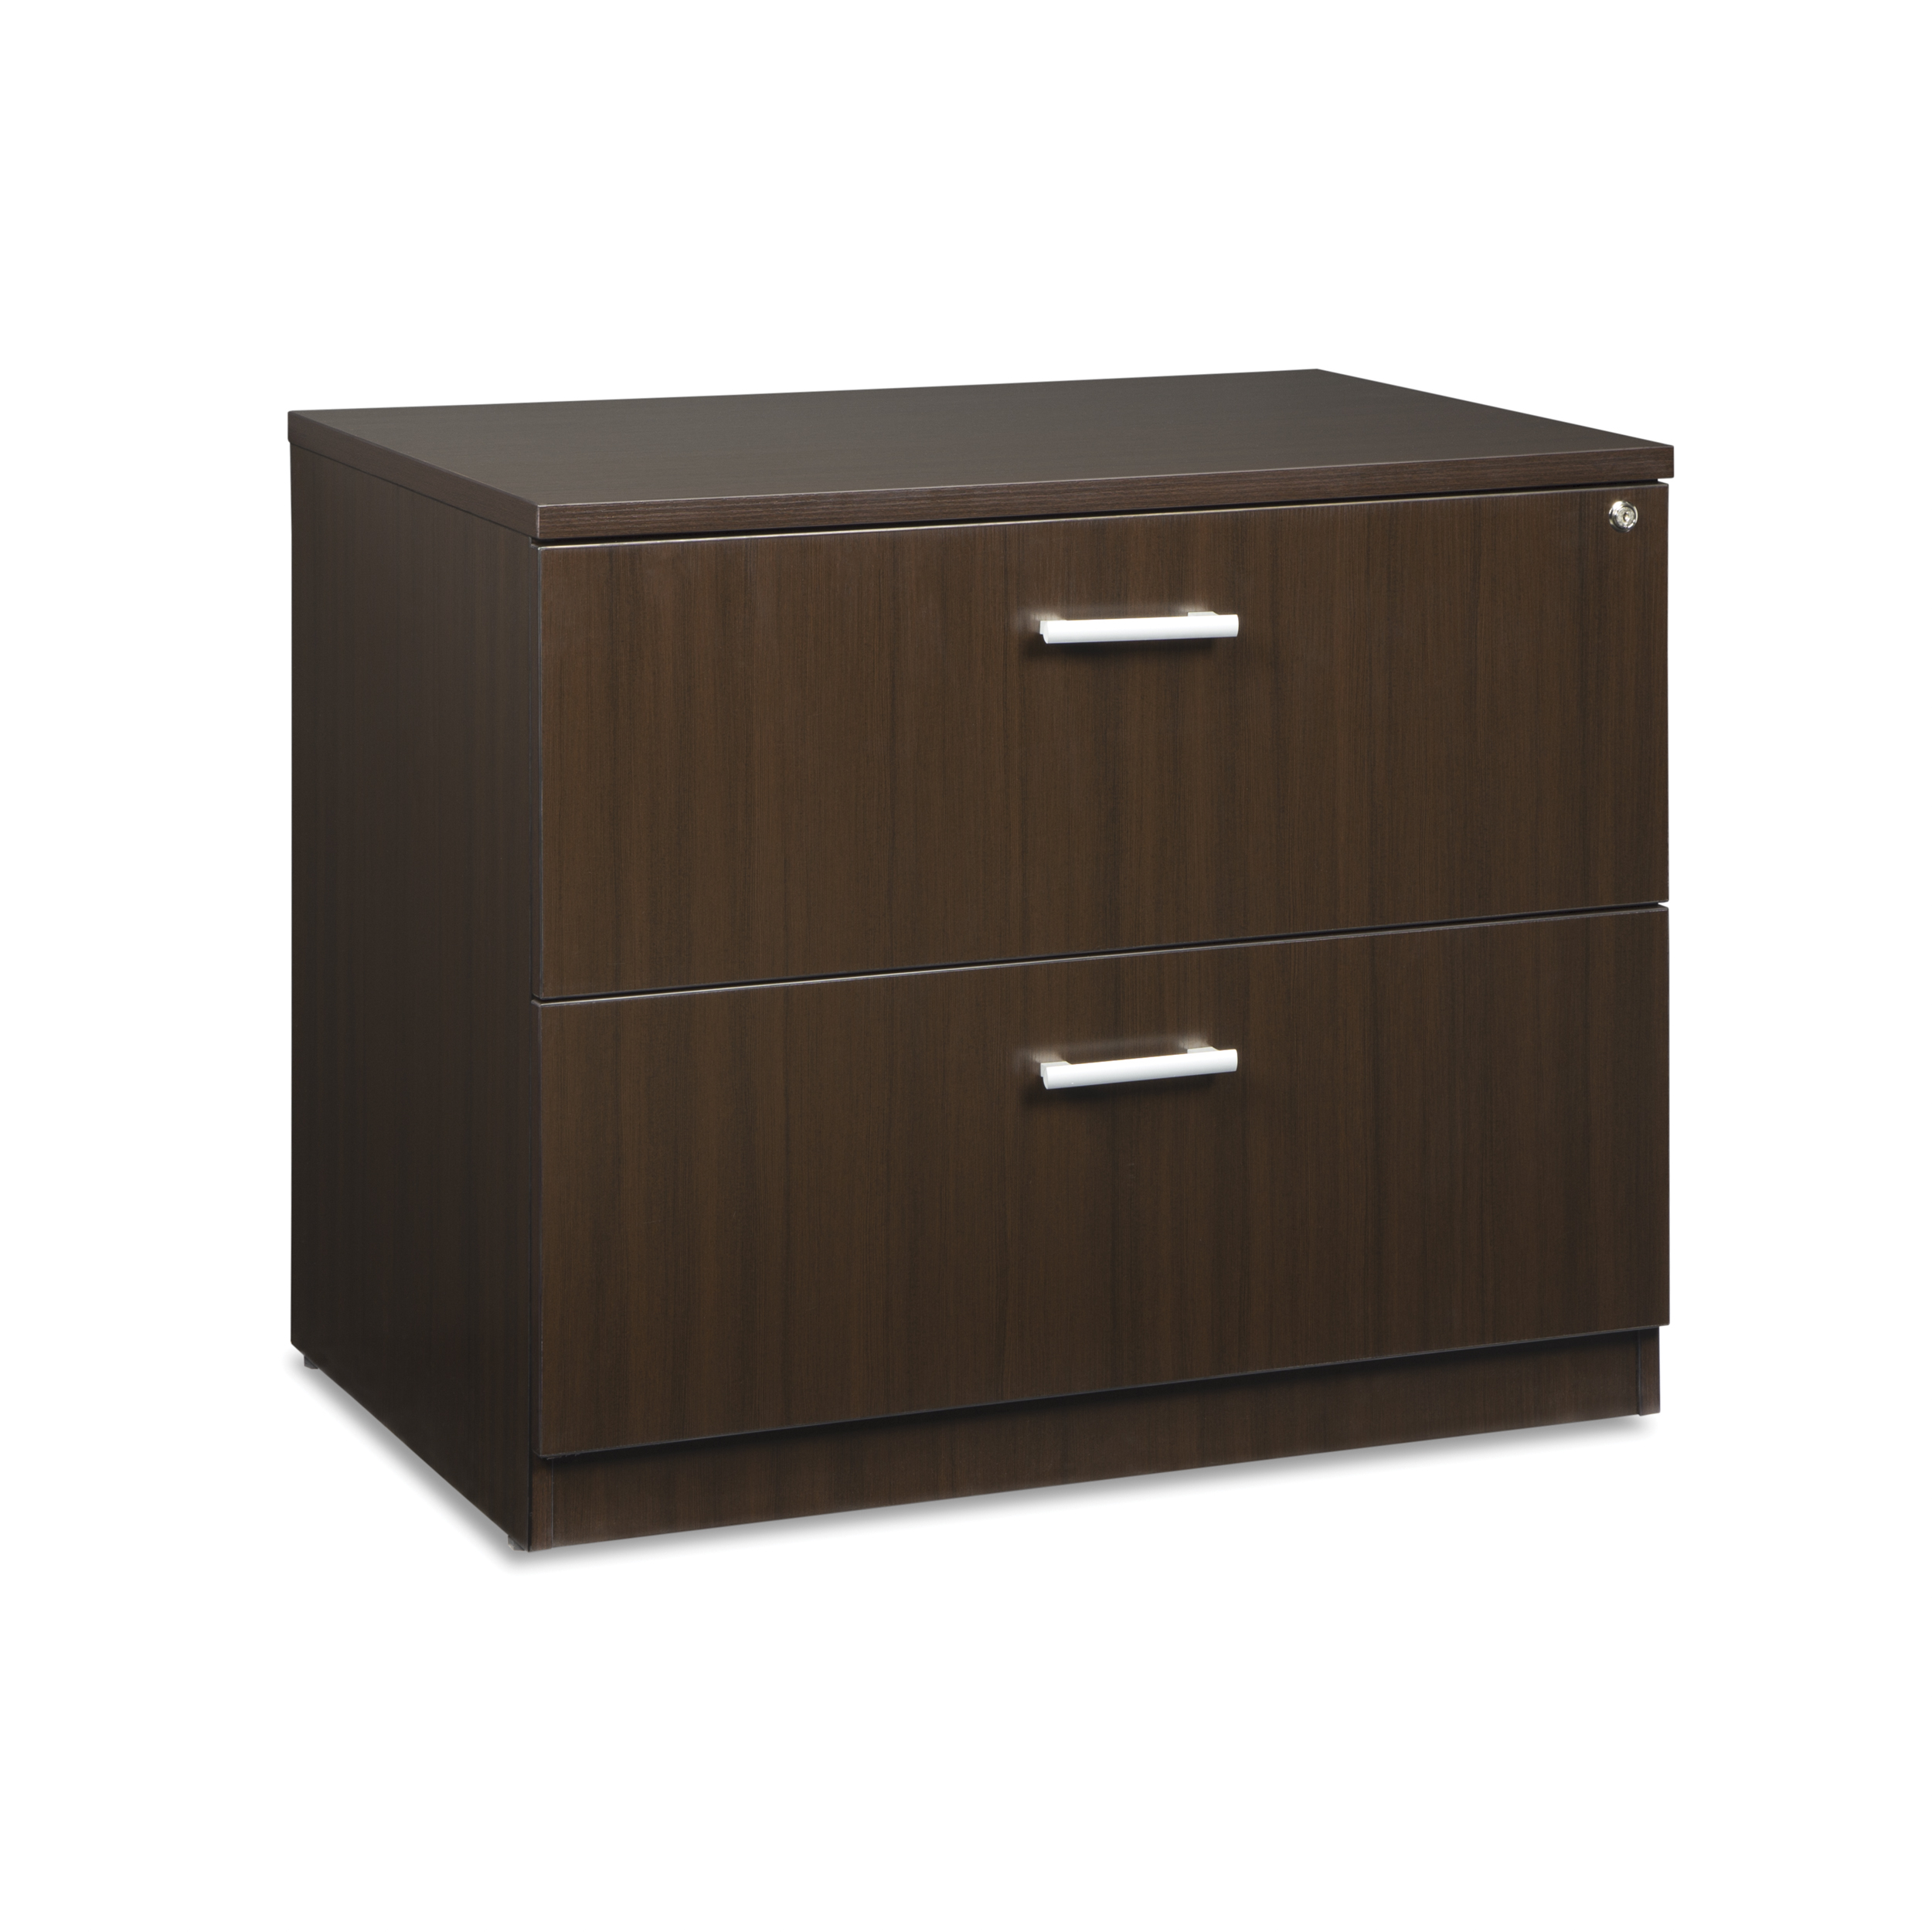 Ofm Fulcrum Series Locking Lateral File Cabinet 2 Drawer Filing pertaining to size 2500 X 2500